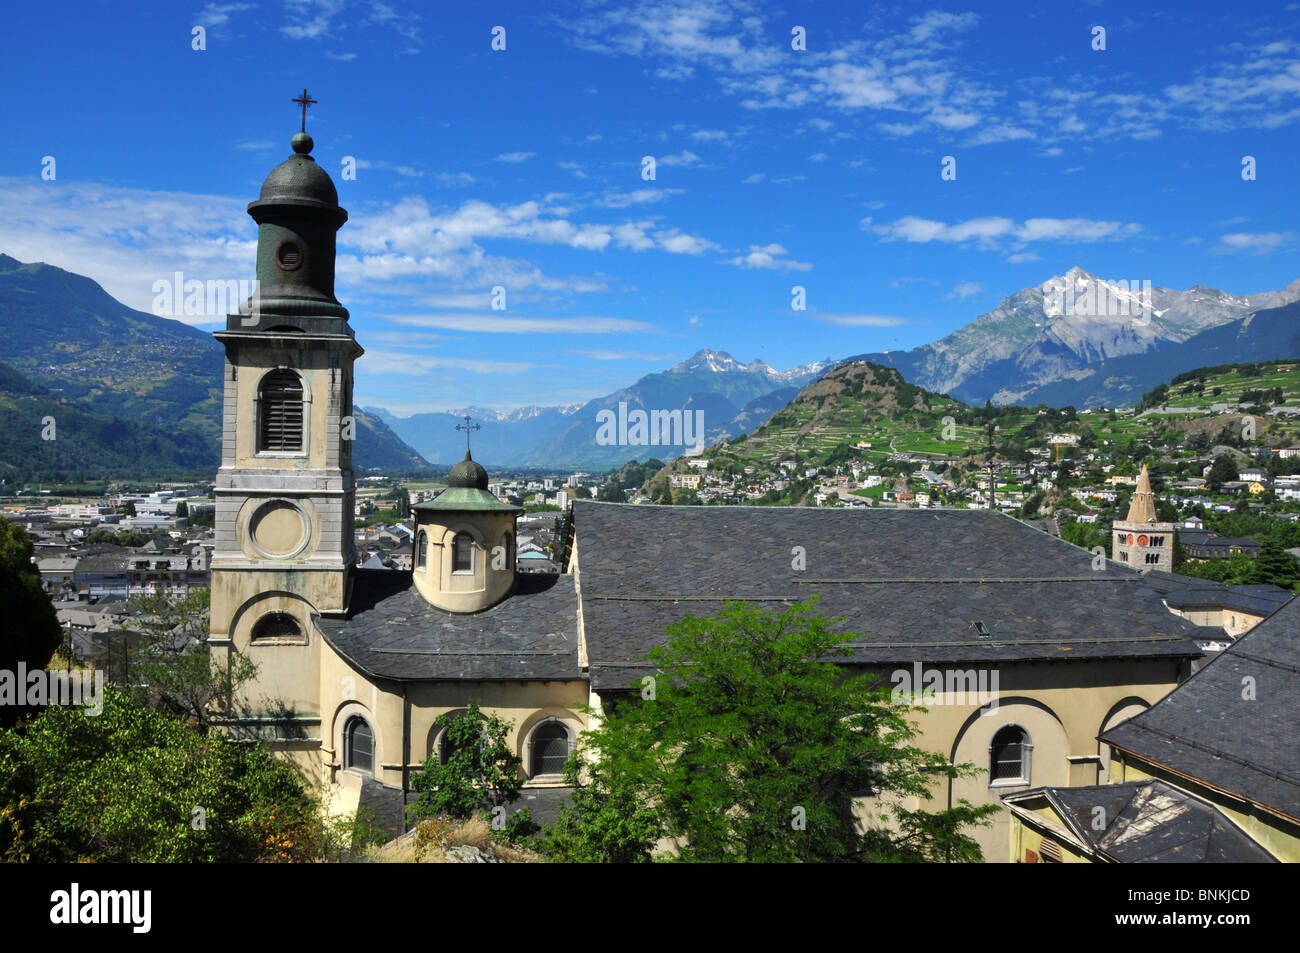 Switzerland Valais Sion Sion church architecture town city cathedral building construction classically Italian tower - Stock Image